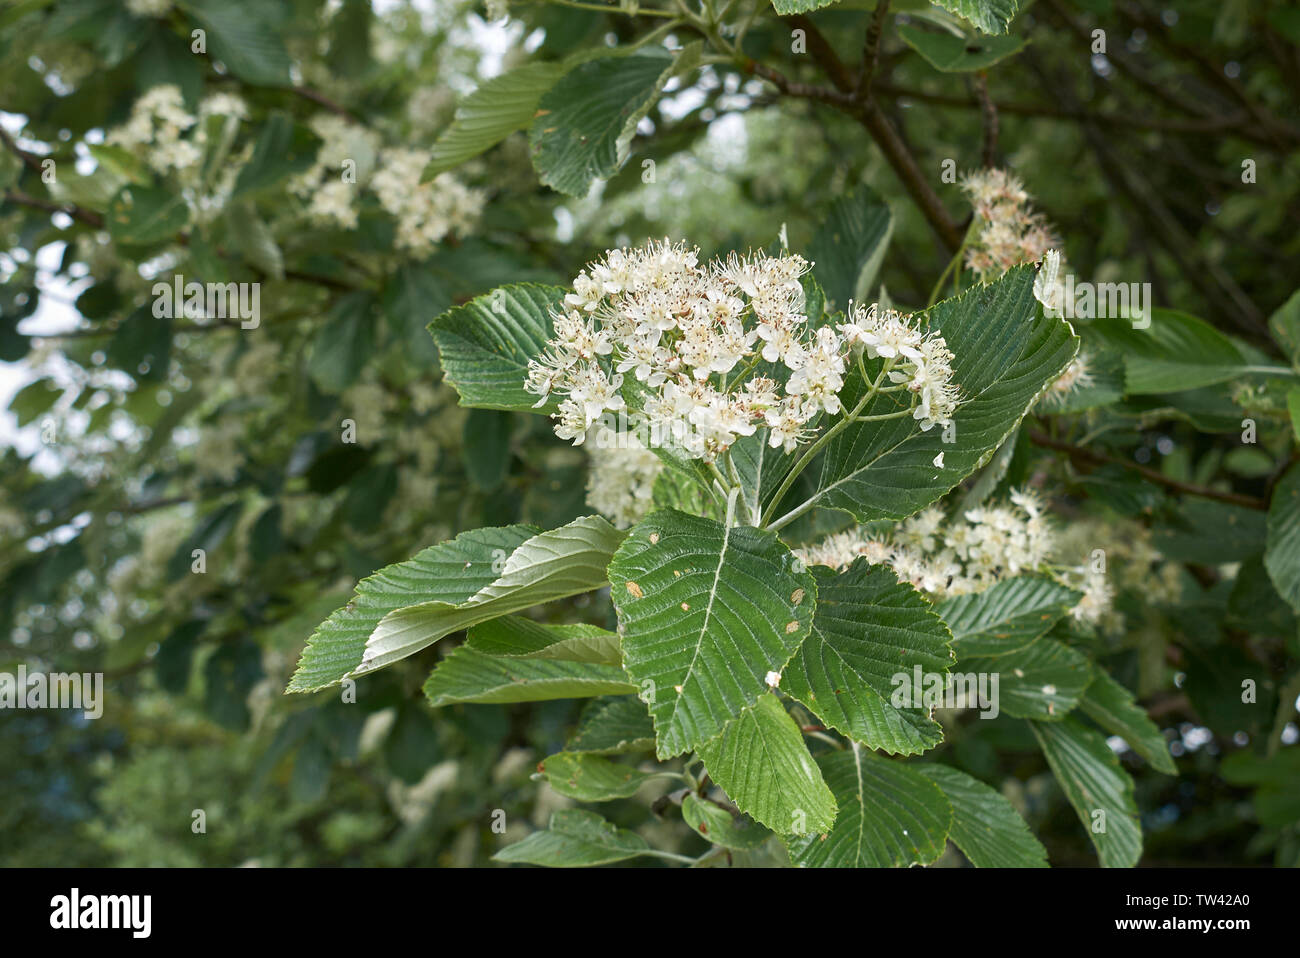 Sorbus aria branch with flowers - Stock Image